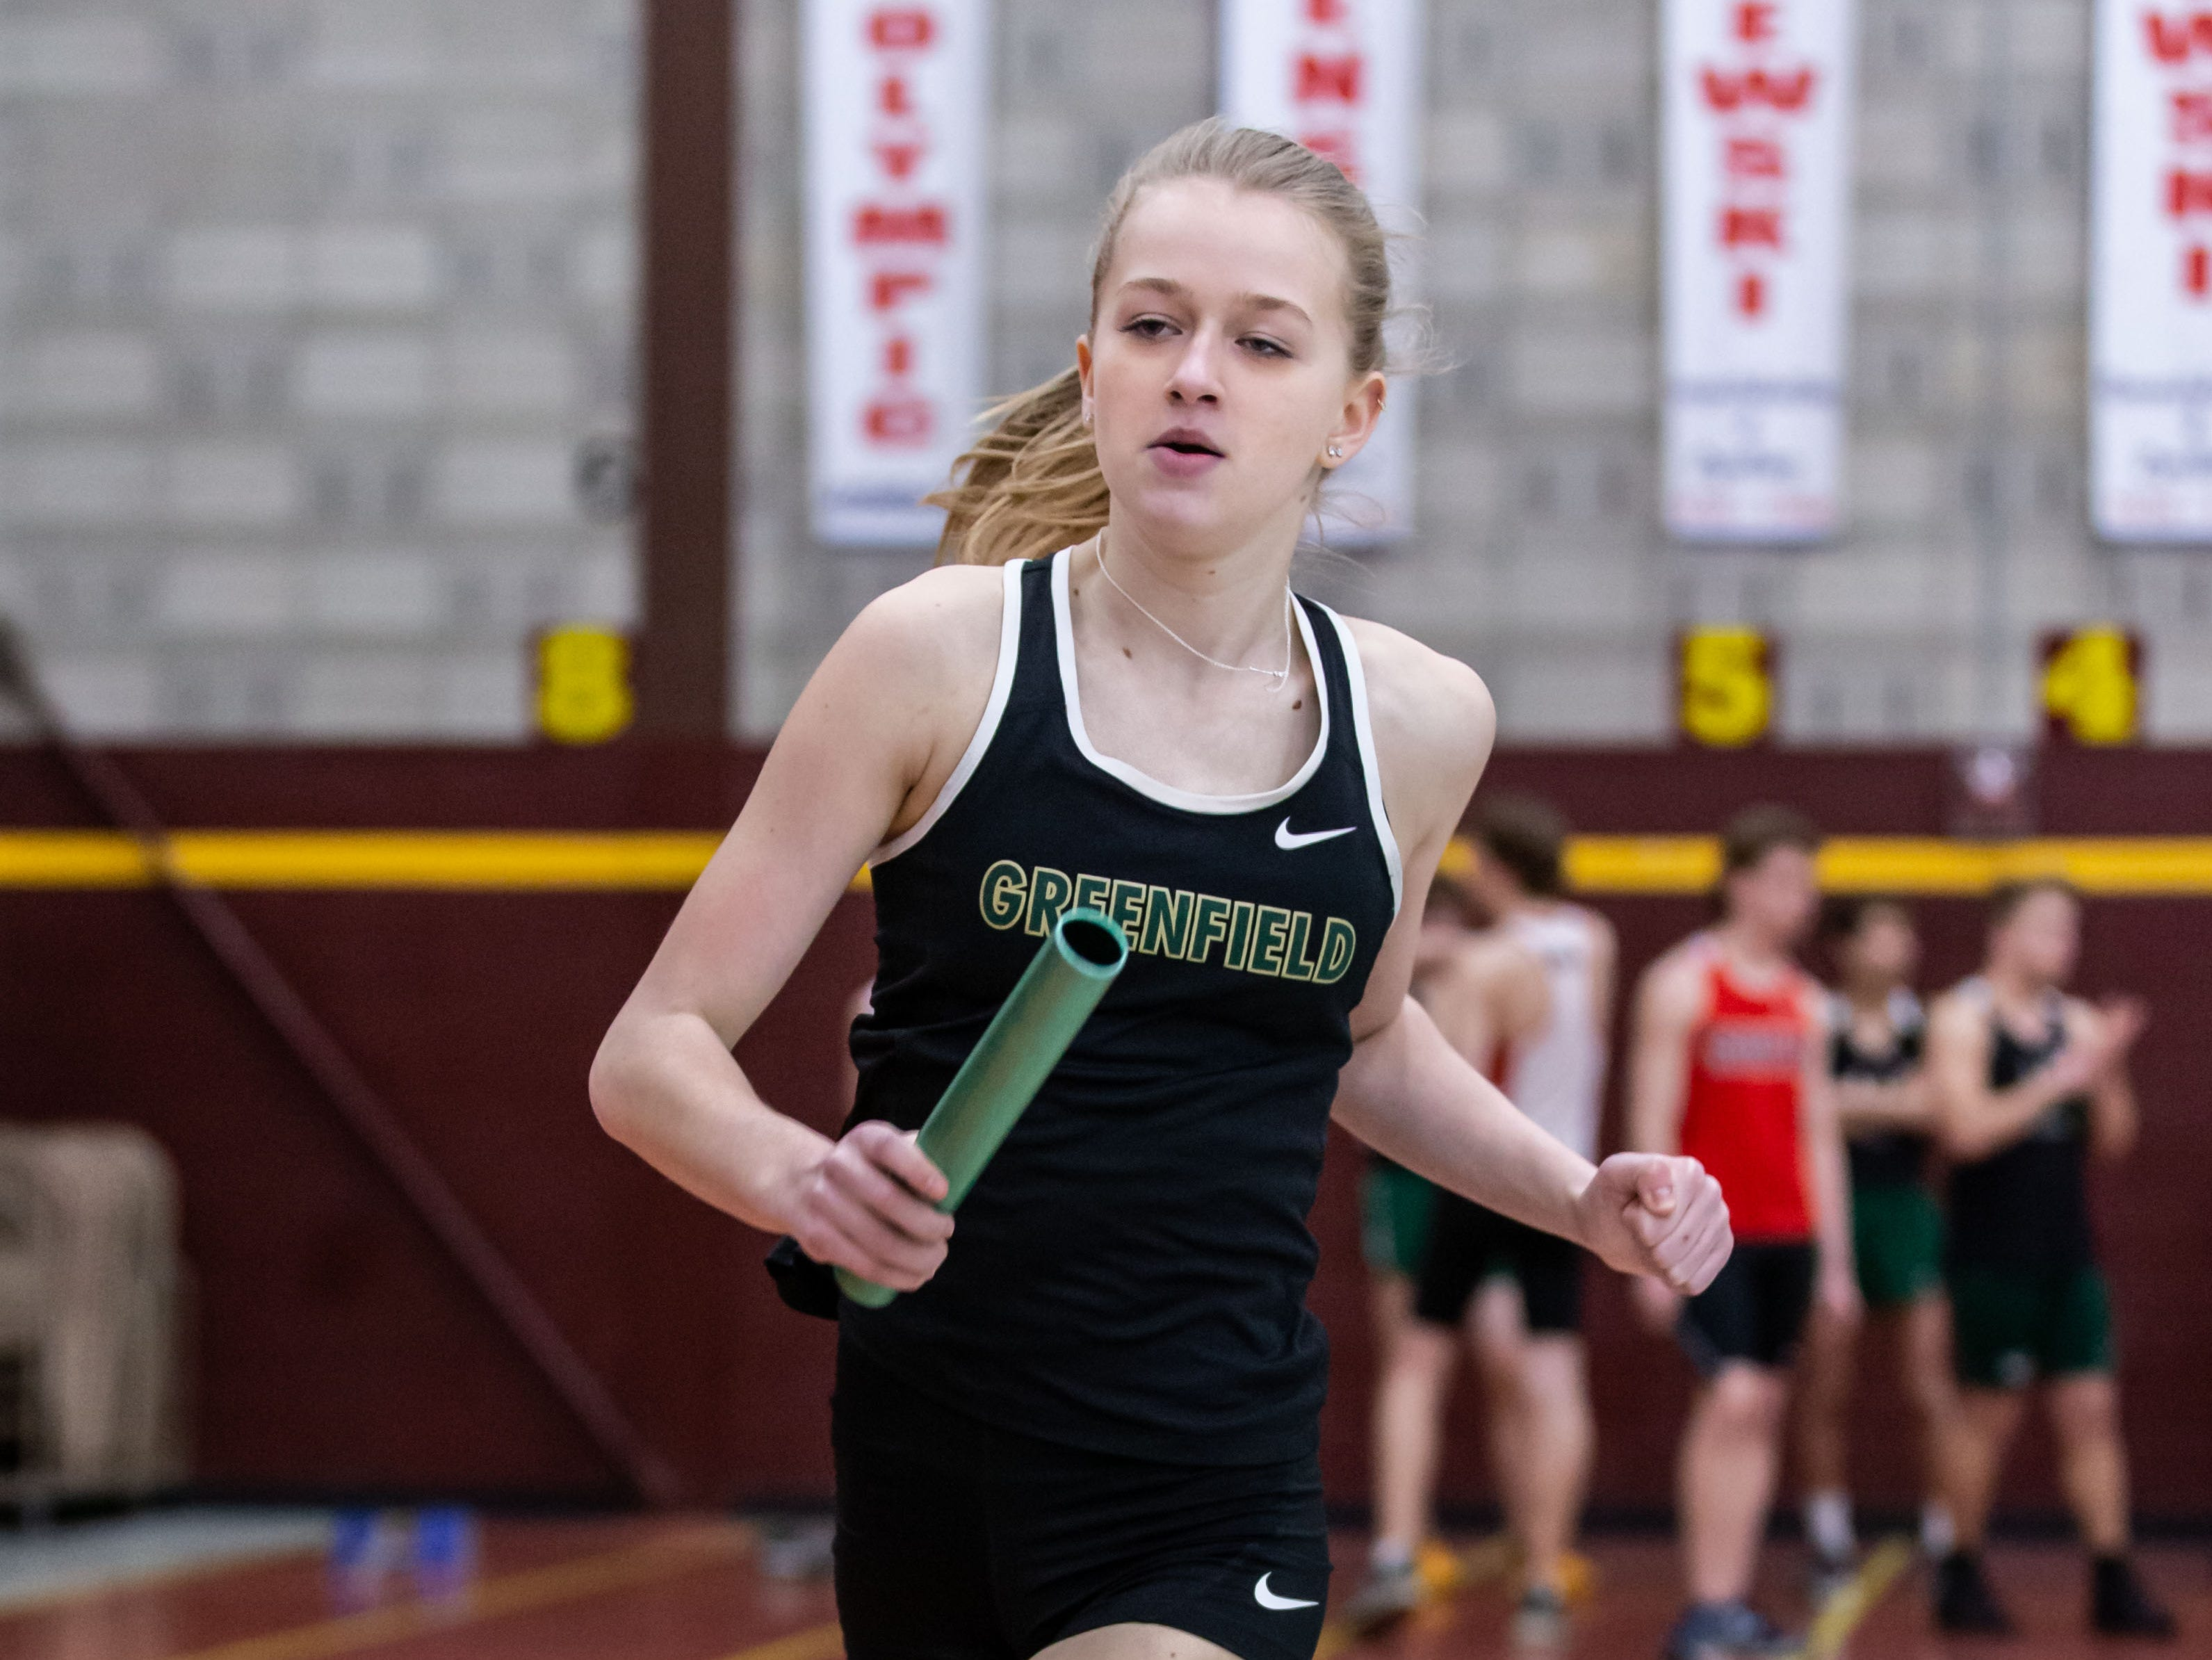 Greenfield's Megan Slatty competes in the distance medley relay at the Reinhard Bulldog Relays hosted by West Allis Central on Friday, March 15, 2019.